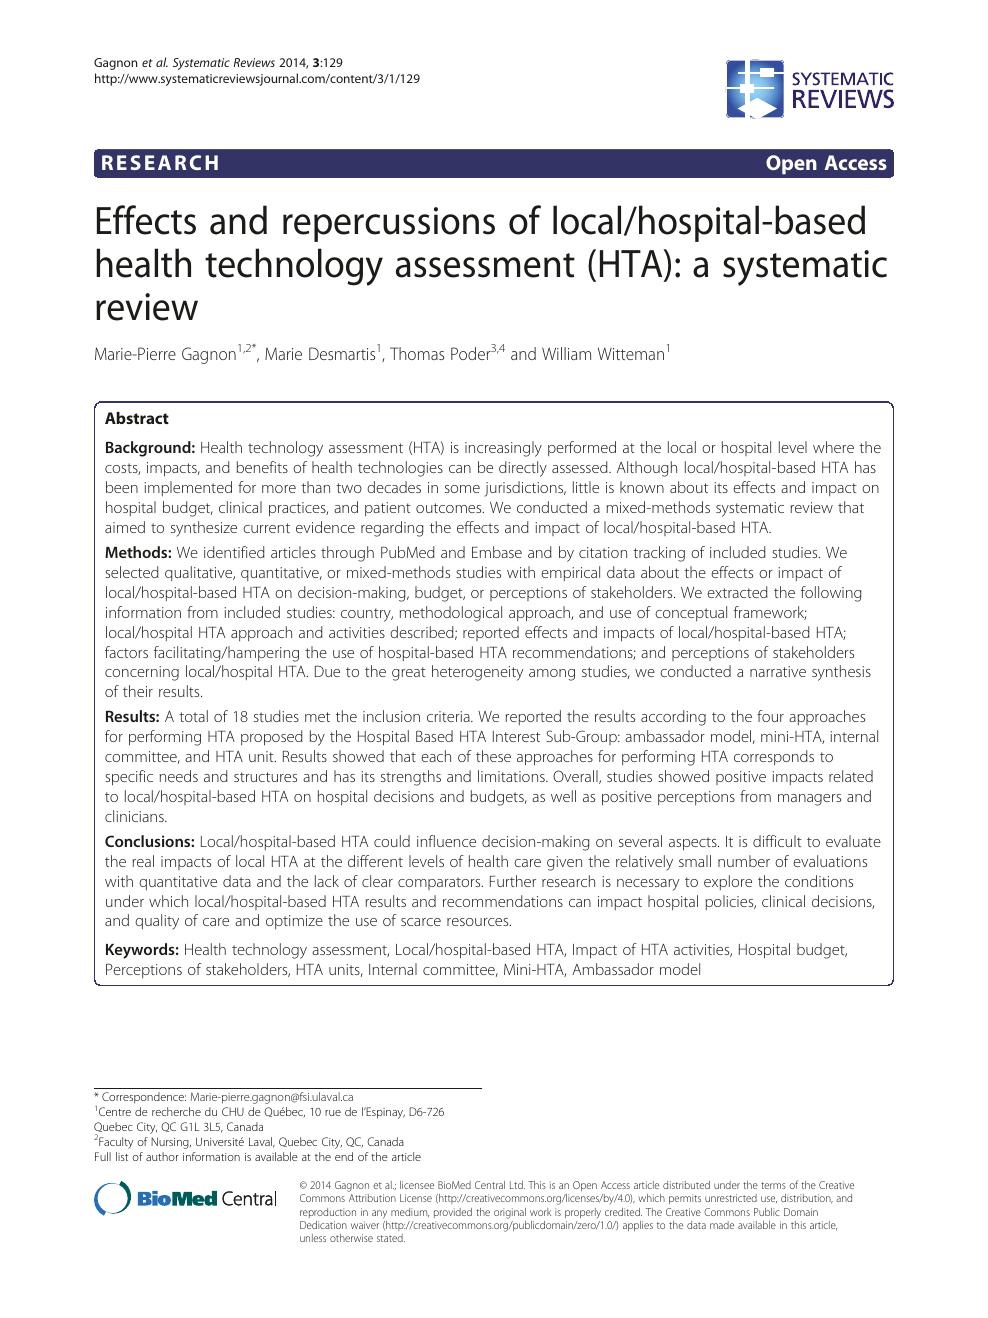 Effects and repercussions of local/hospital-based health